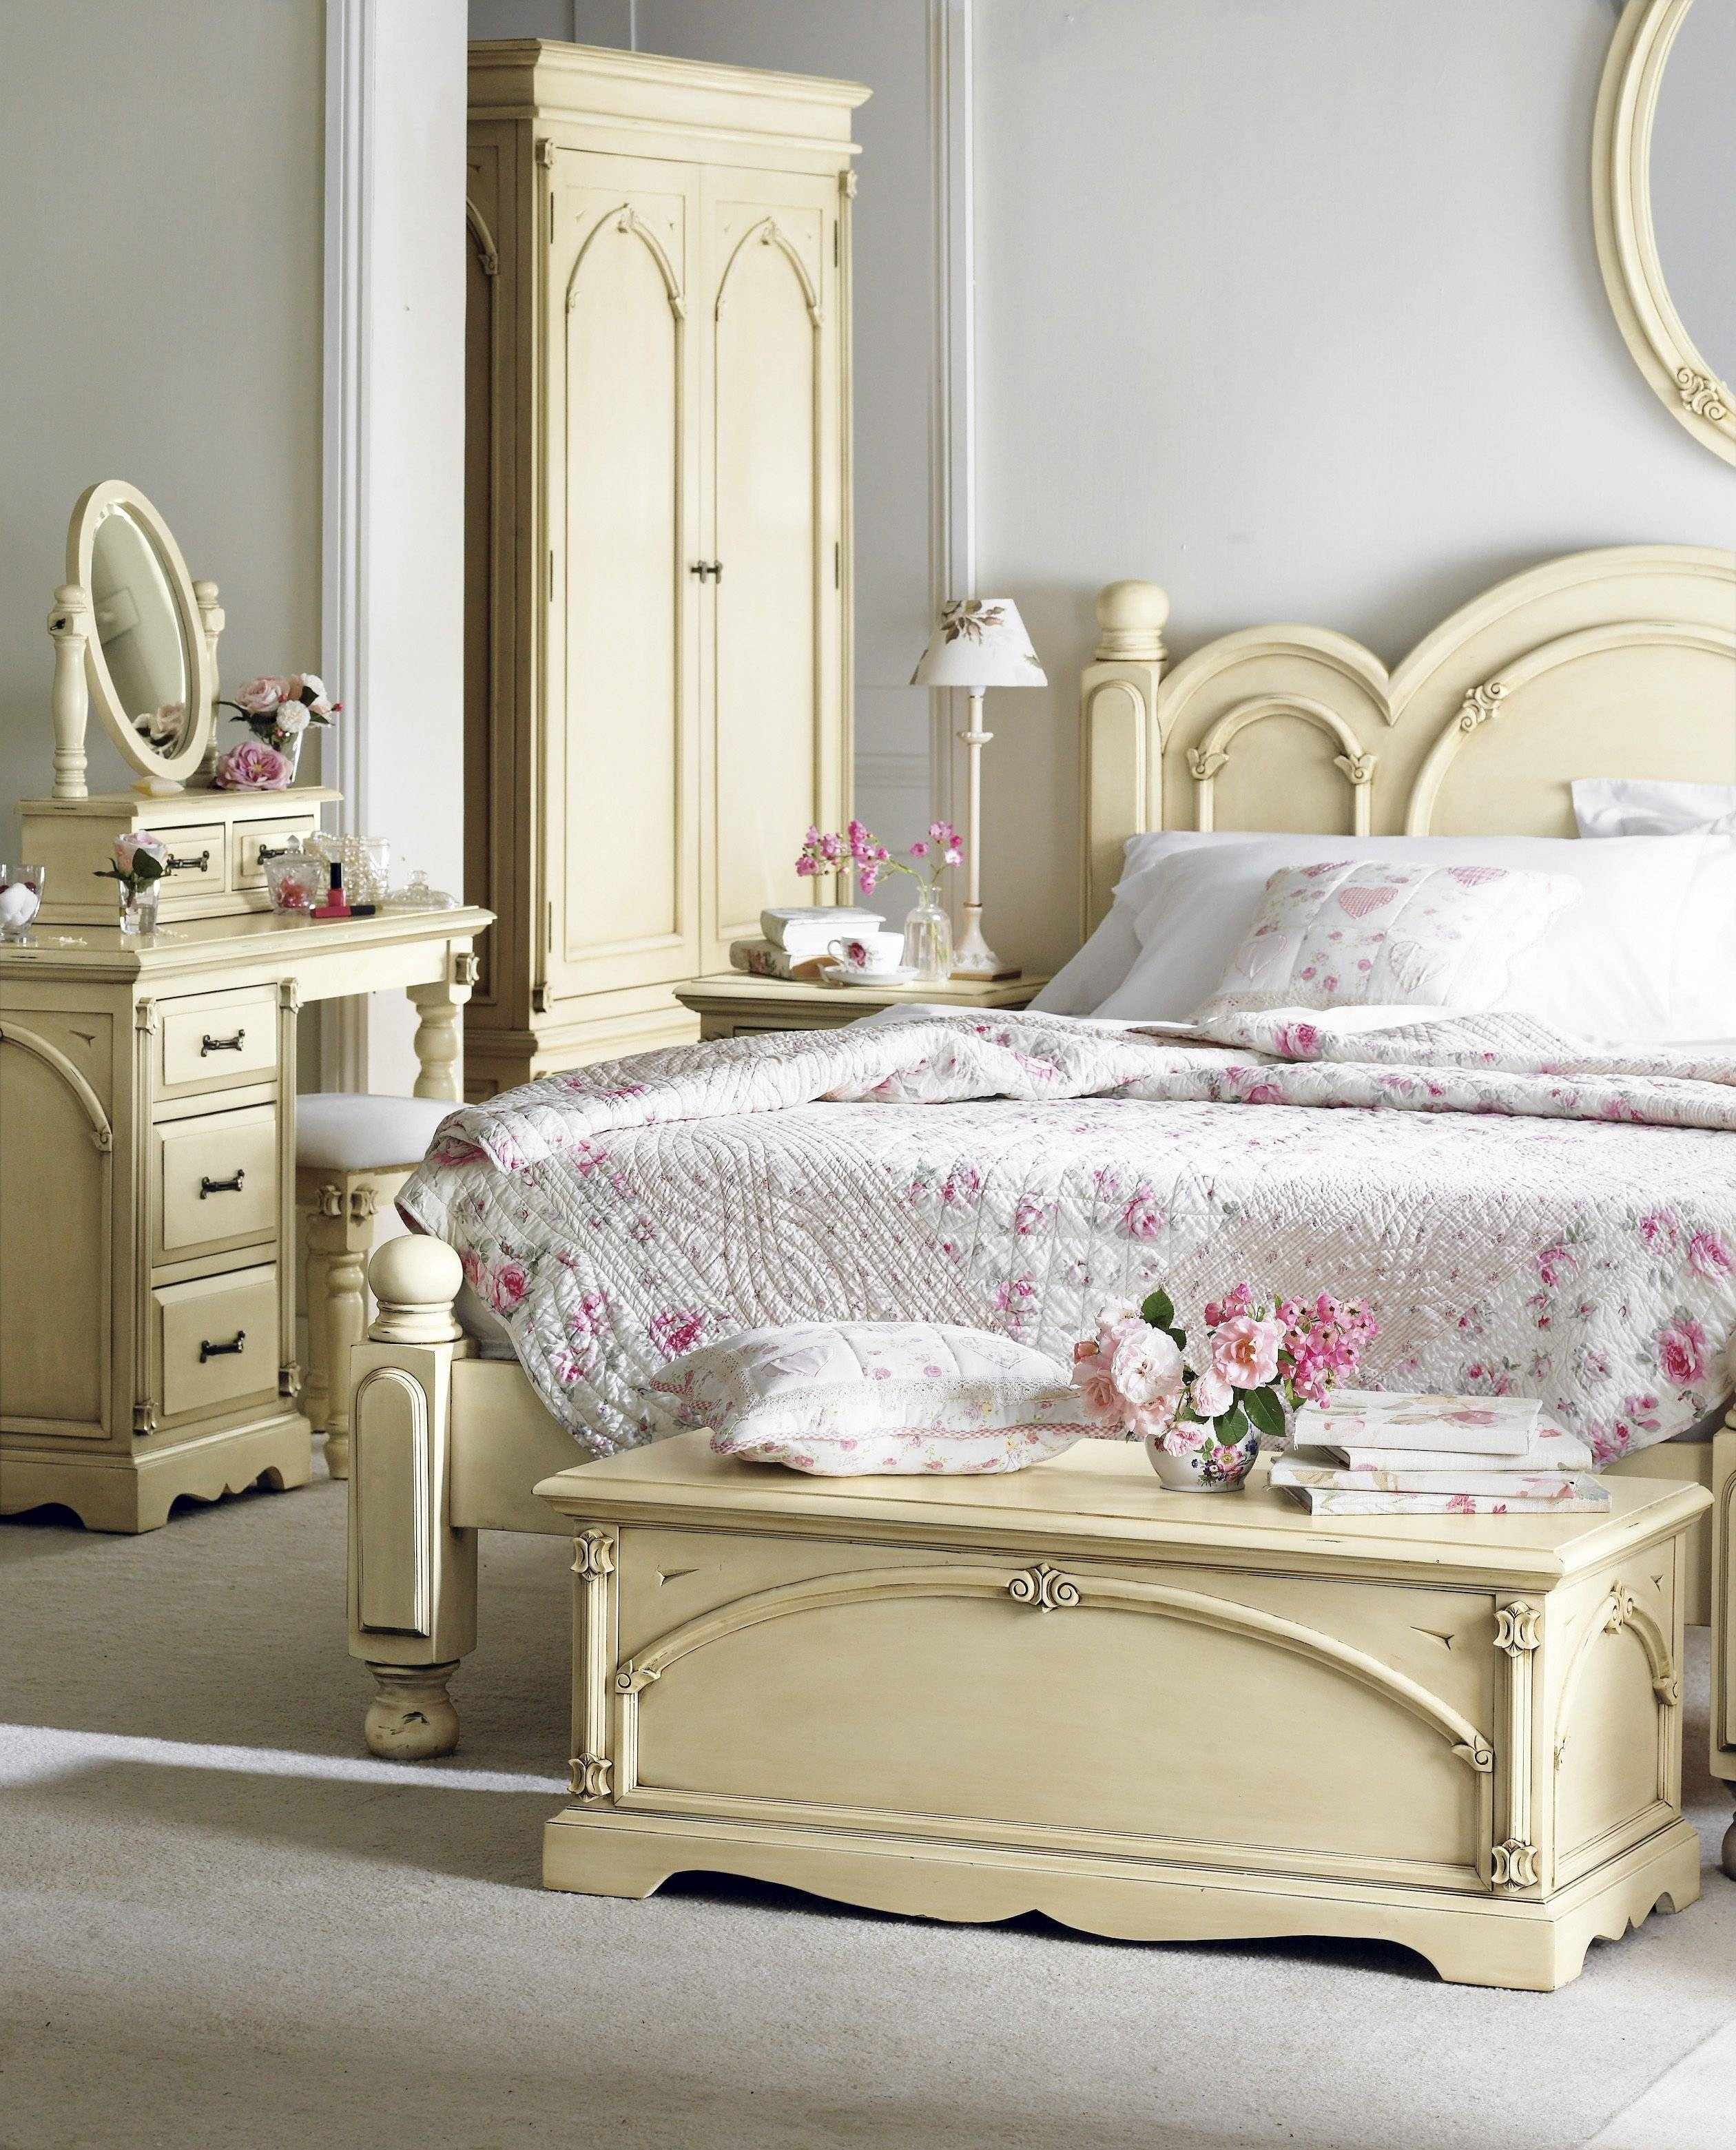 Oval Cream Wooden Mirror Addedcream Wooden Dressing Table On with regard to Antique Cream Mirrors (Image 19 of 25)